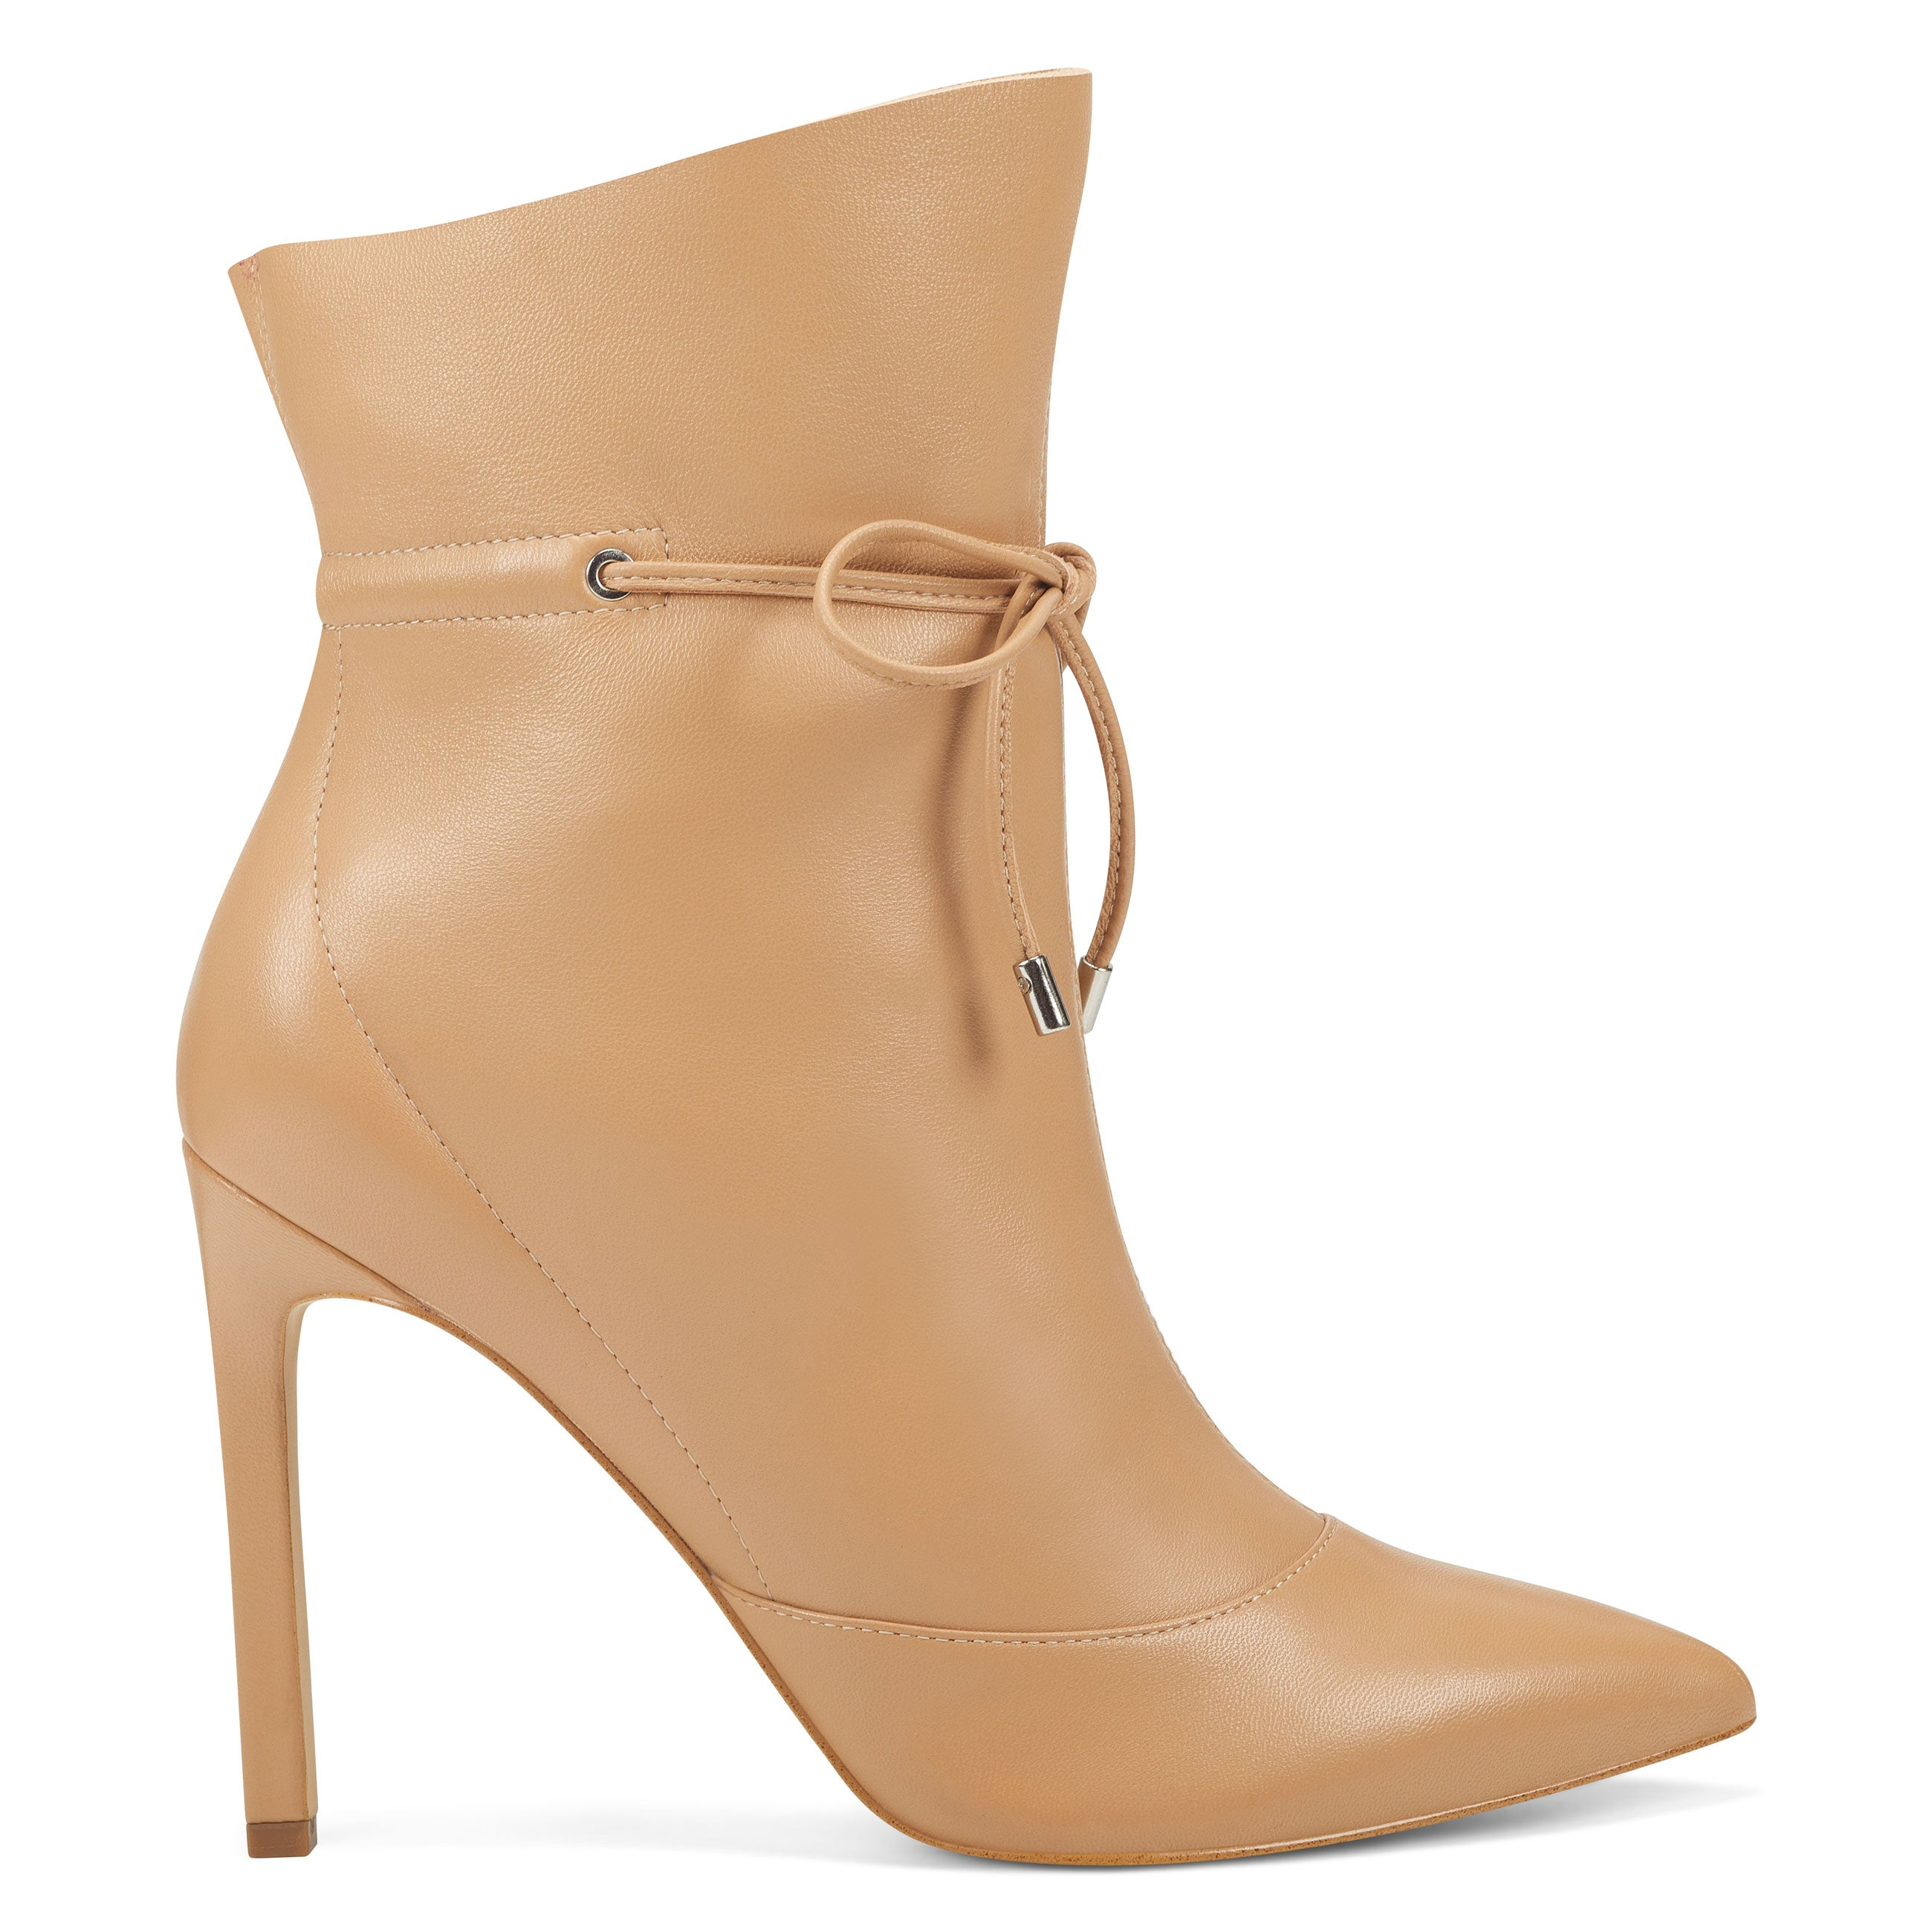 NINEWEST Tirzah Pointy Toe Dress Booties